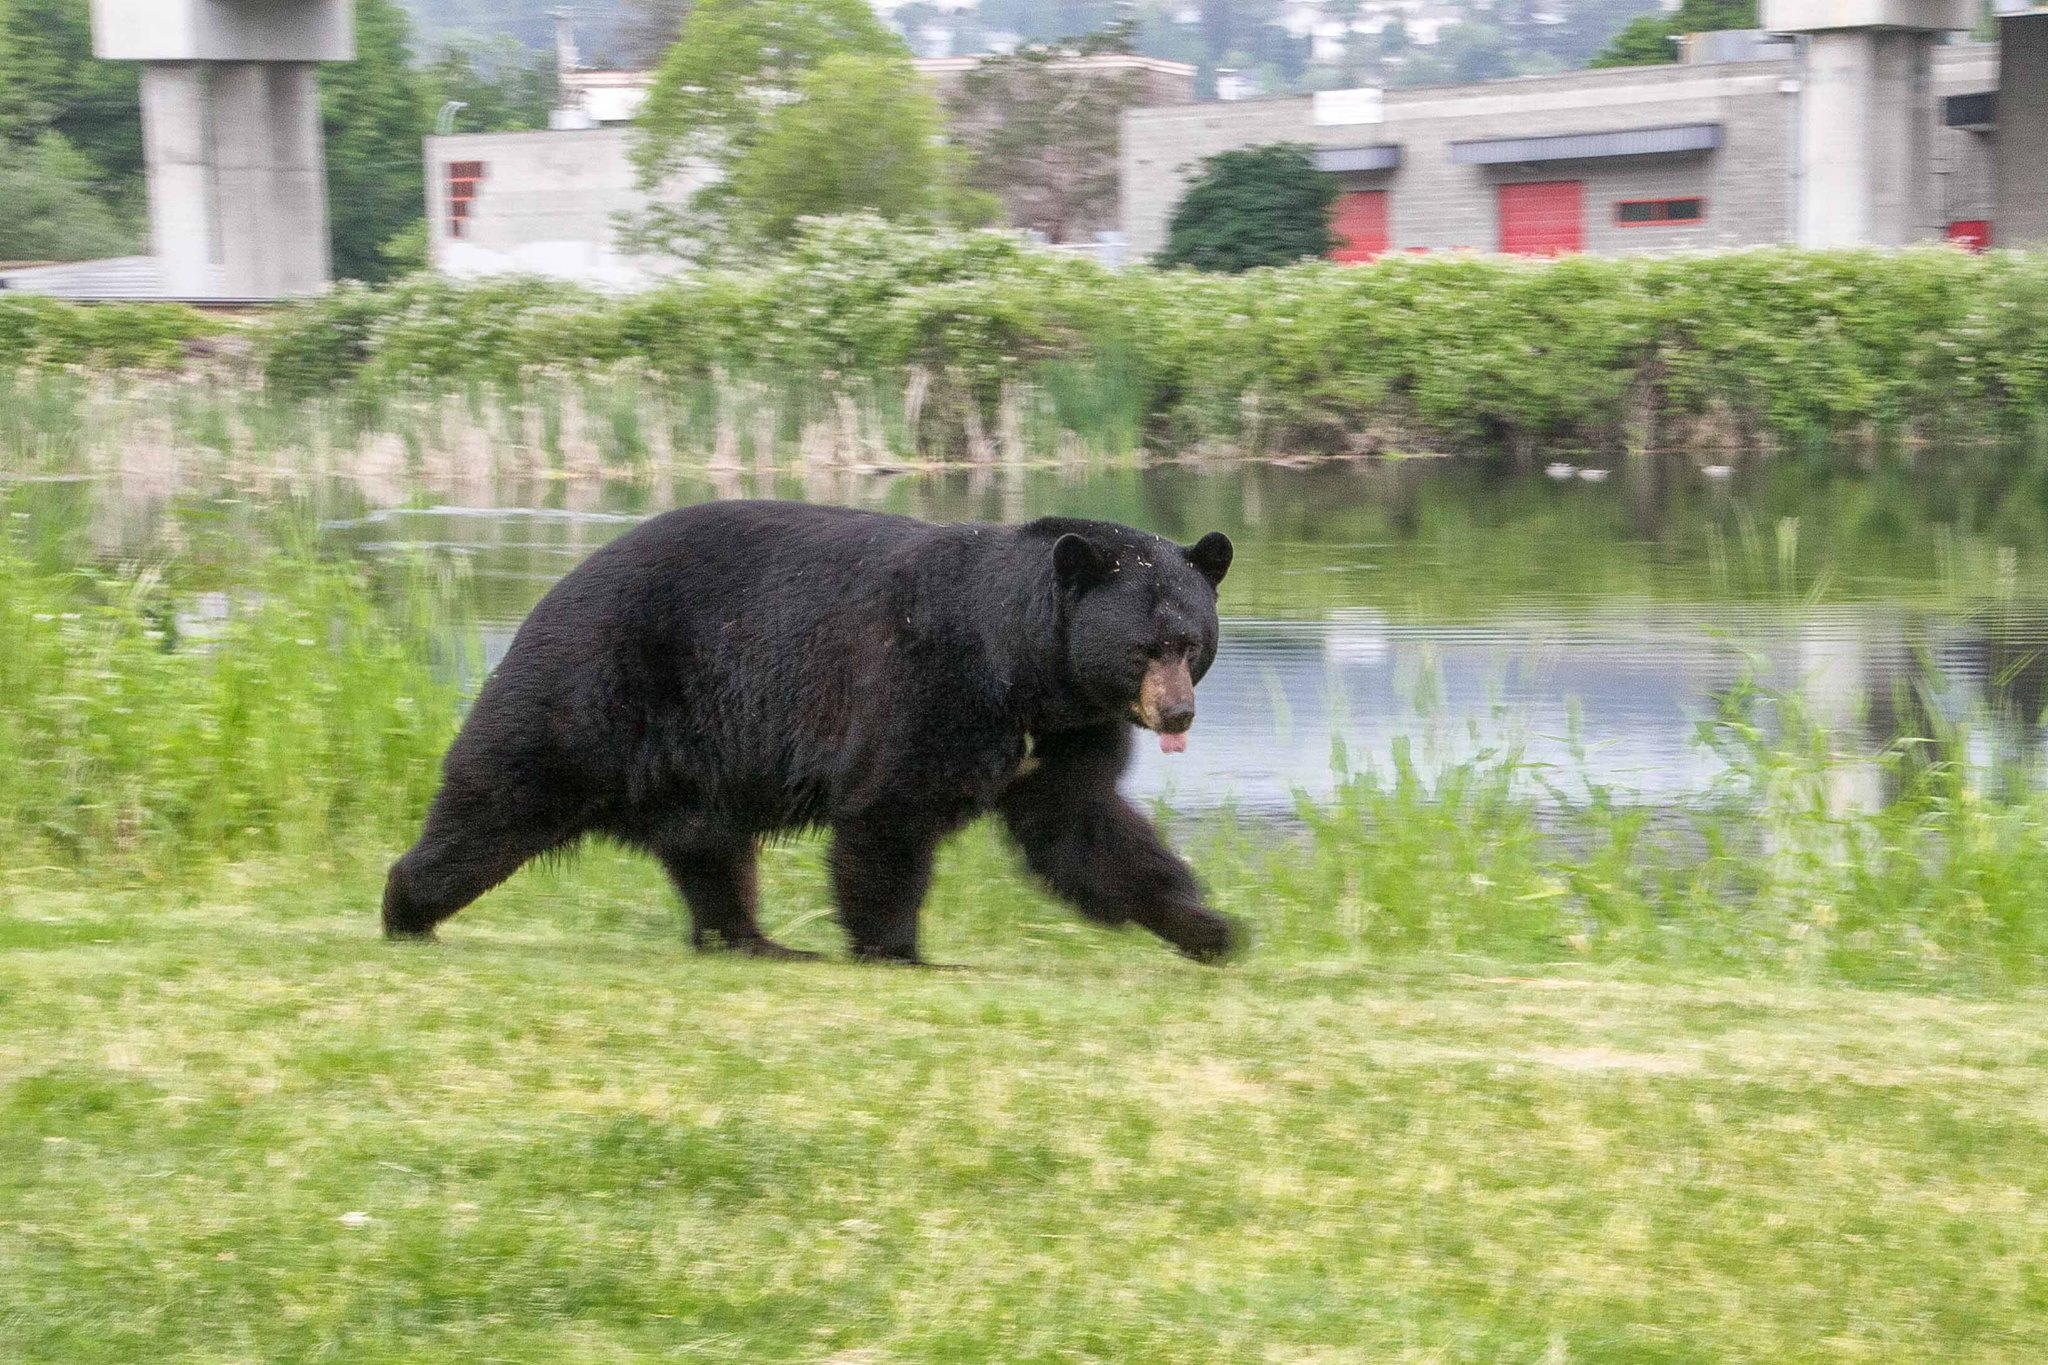 This healthy looking black bear was spotted by our team beside Pinnacle Pond, Coquitlam (Photo: Ed Paulino / HSWS)